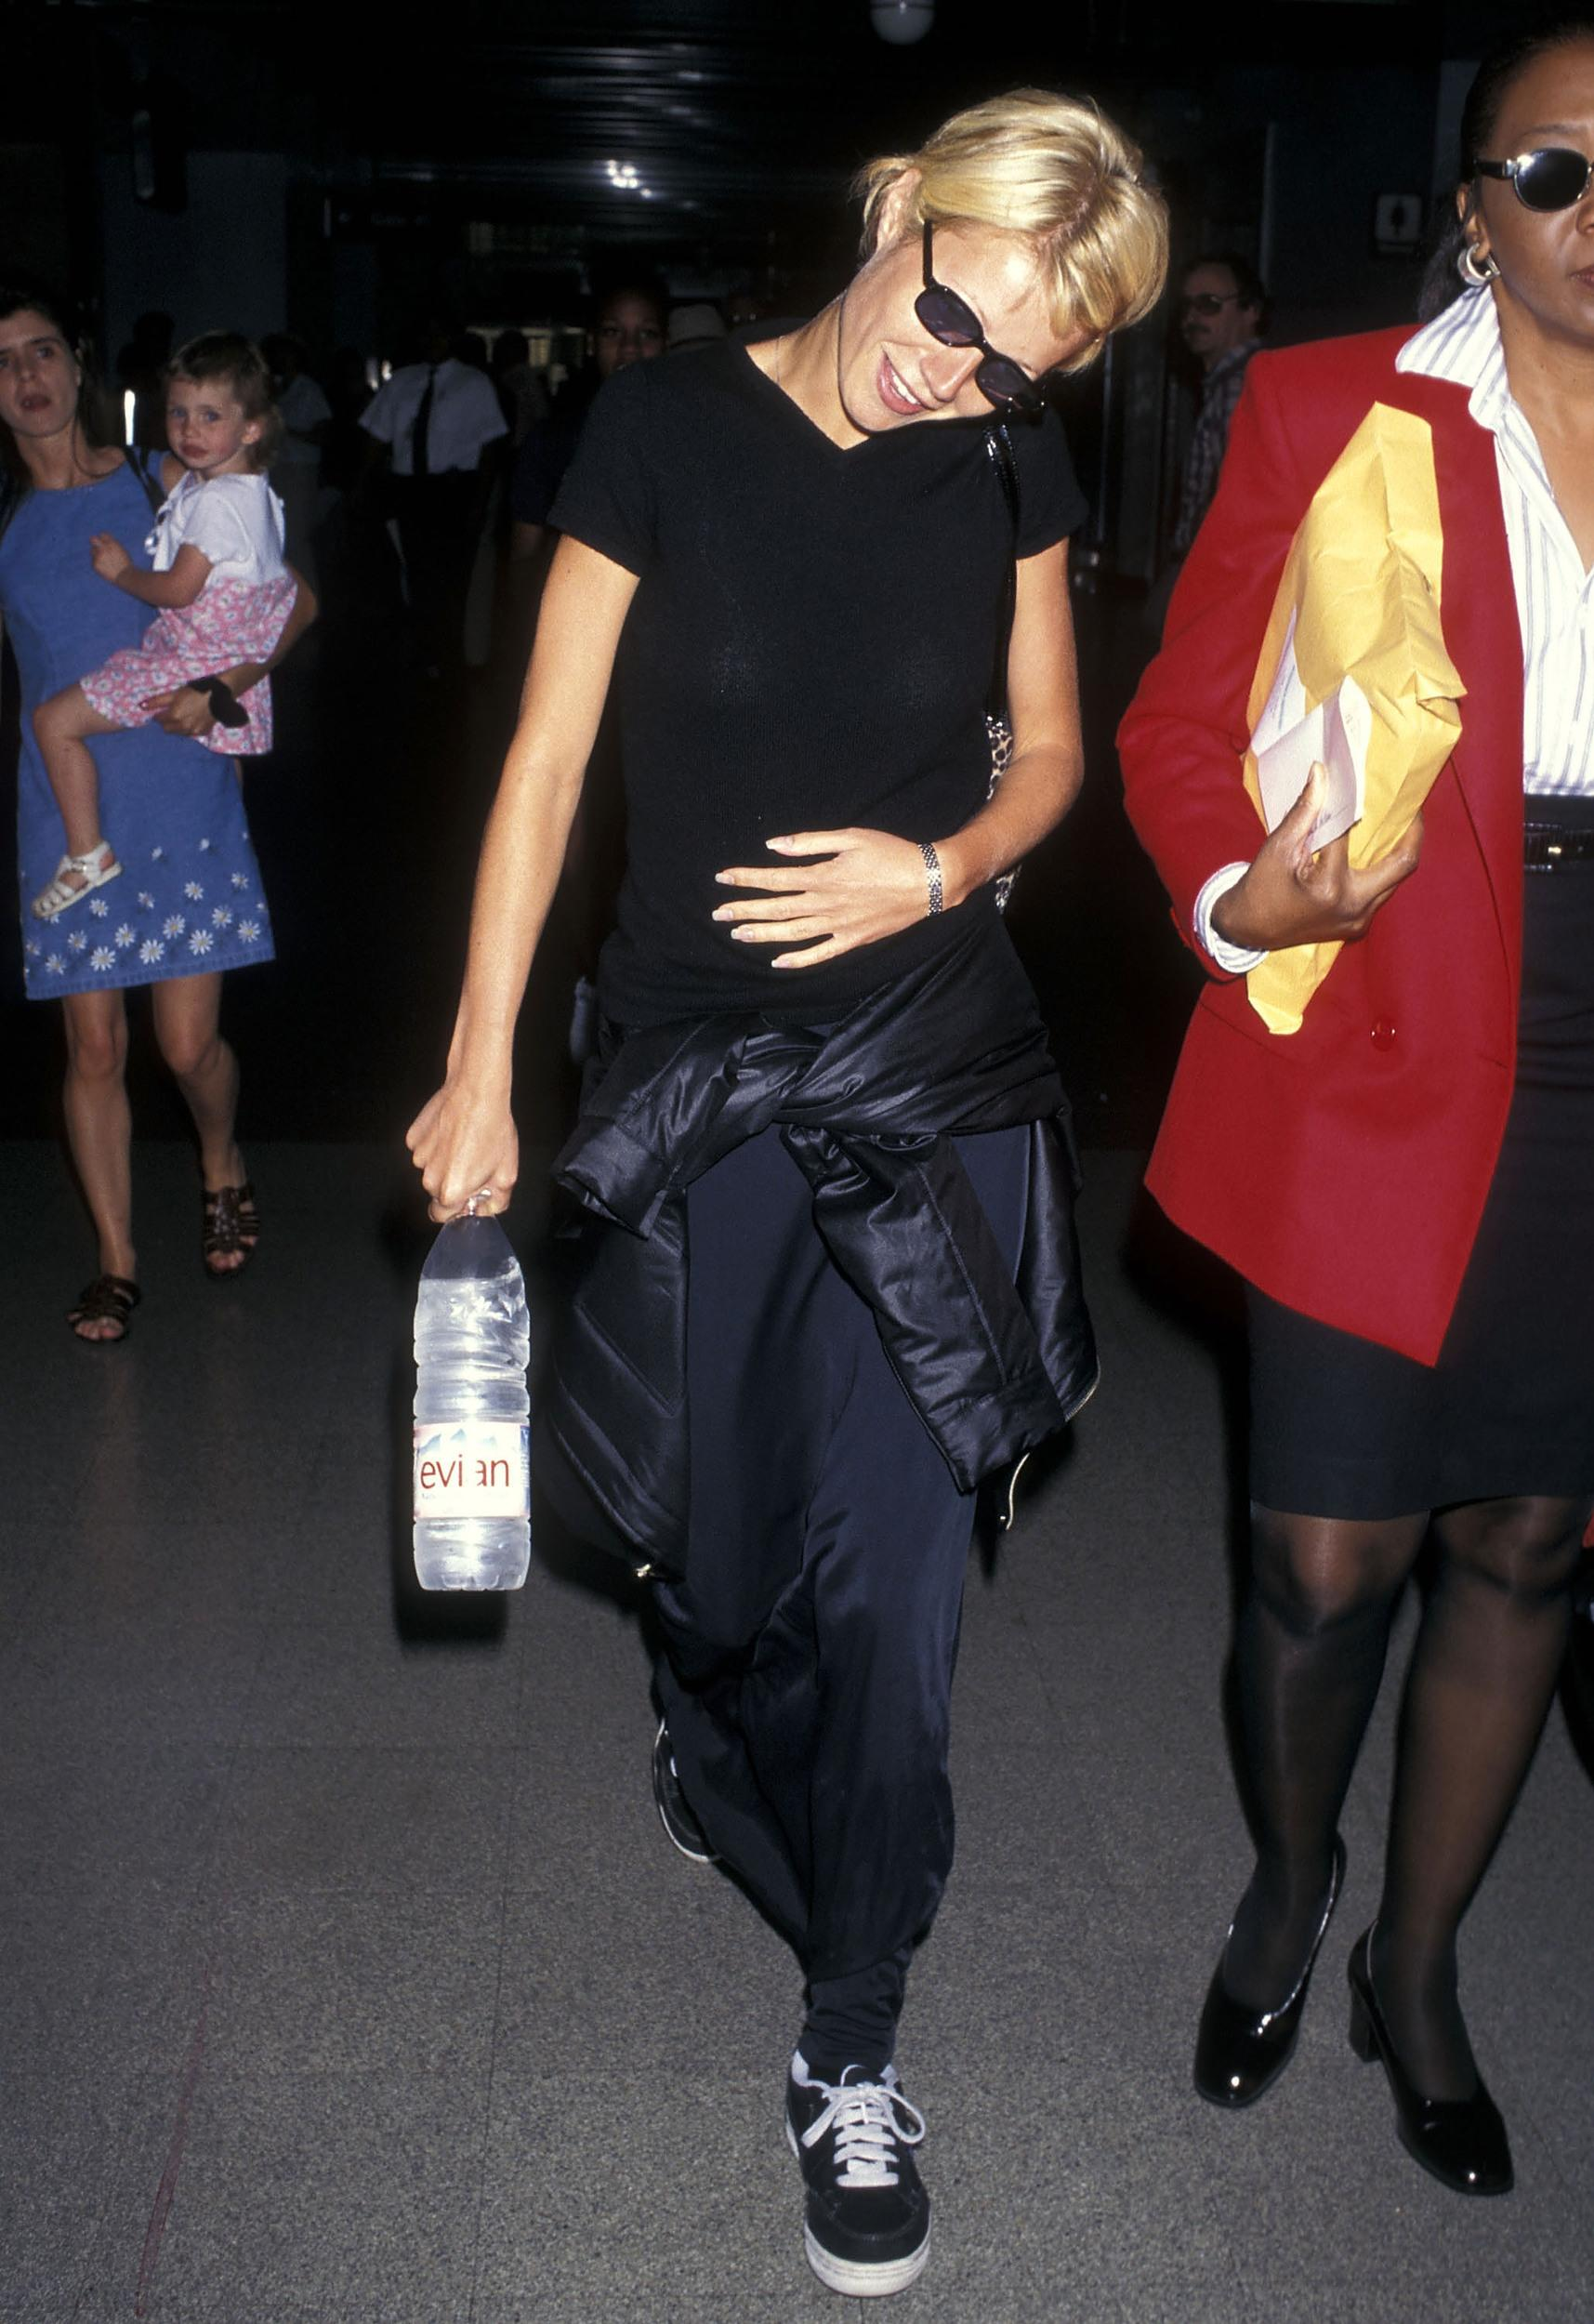 Actress Gwyneth Paltrow departs for New York City on July 30, 1997 from the Los Angeles International Airport in Los Angeles, California. (Photo by Ron Galella, Ltd./WireImage)